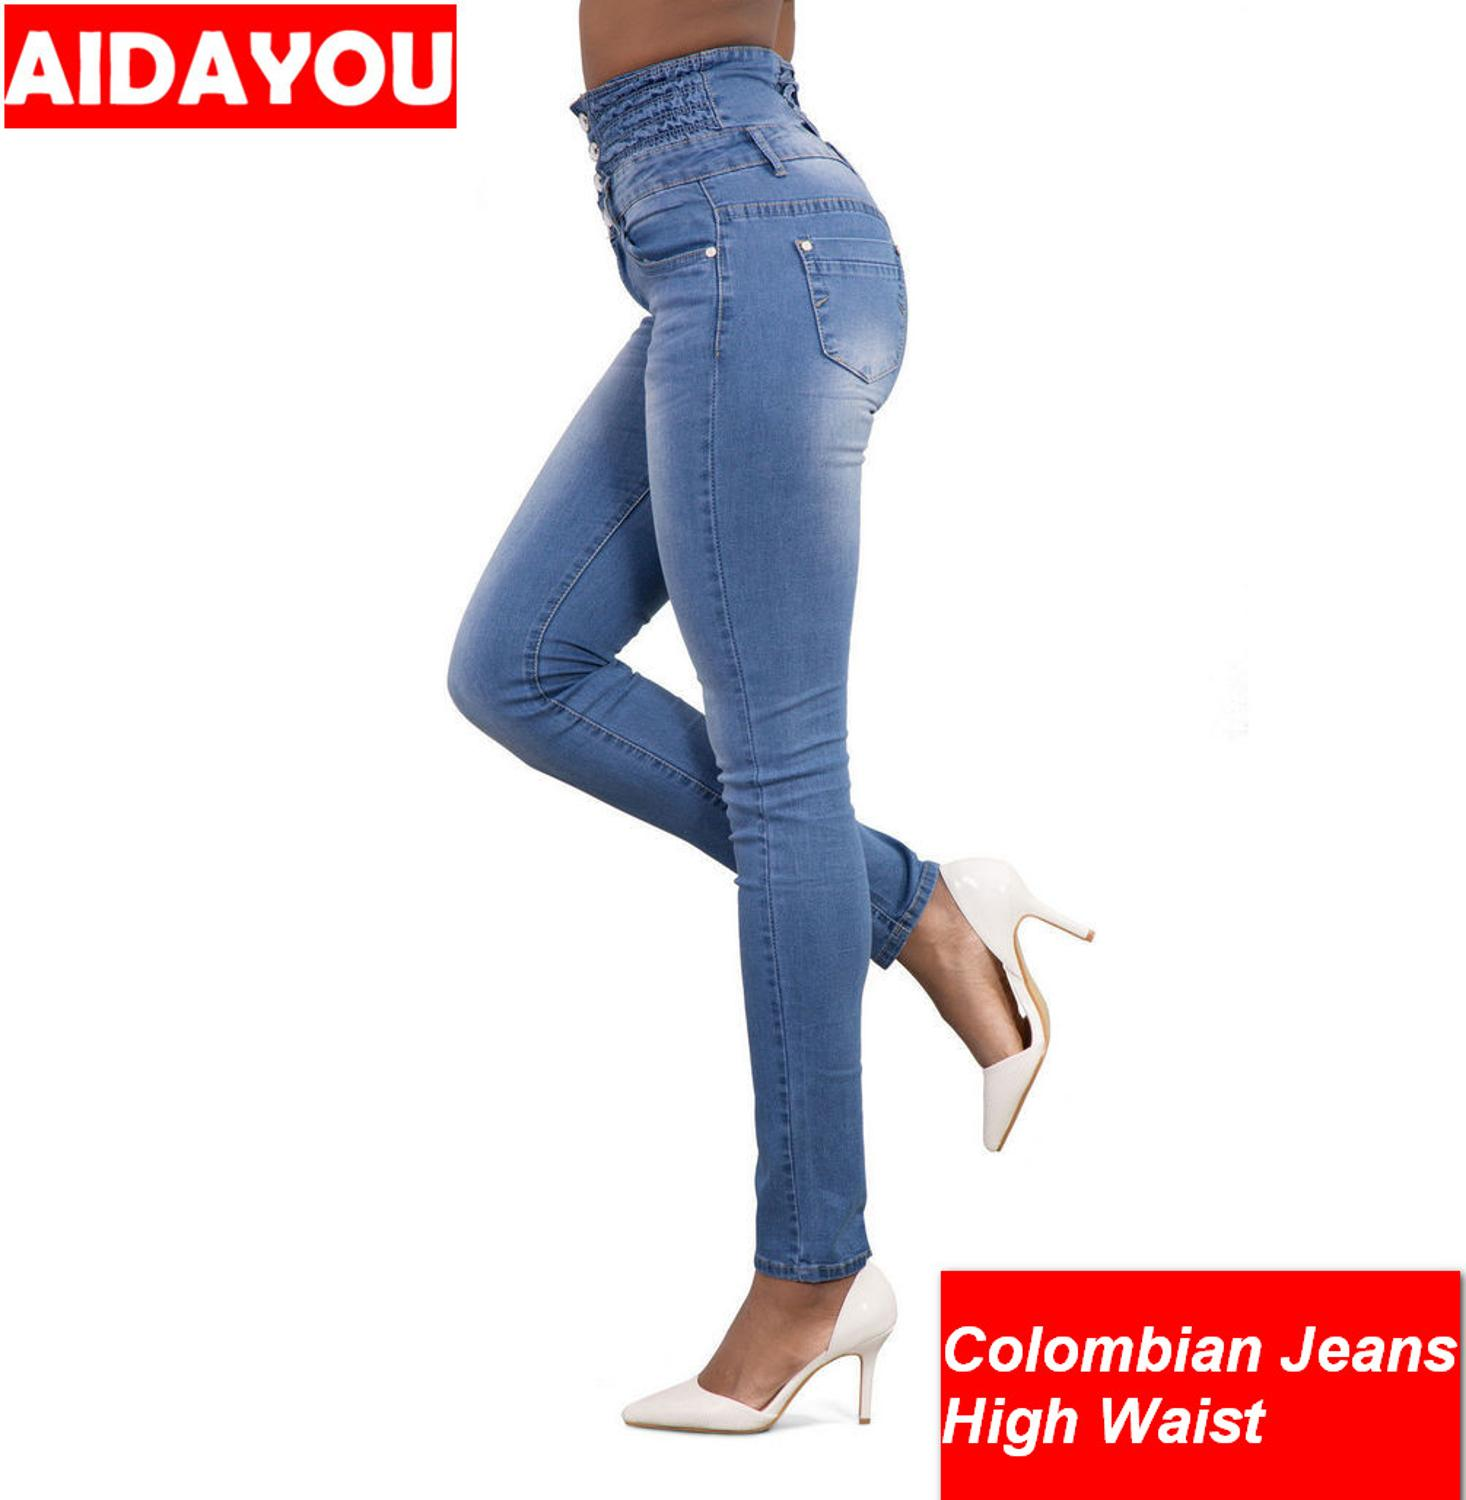 Colombian Jeans Butt Lifting Skim Fit Colombianos Levanta Cola Fit Stretchy Jeans High Waist Plus Size & Junior  Ouc450